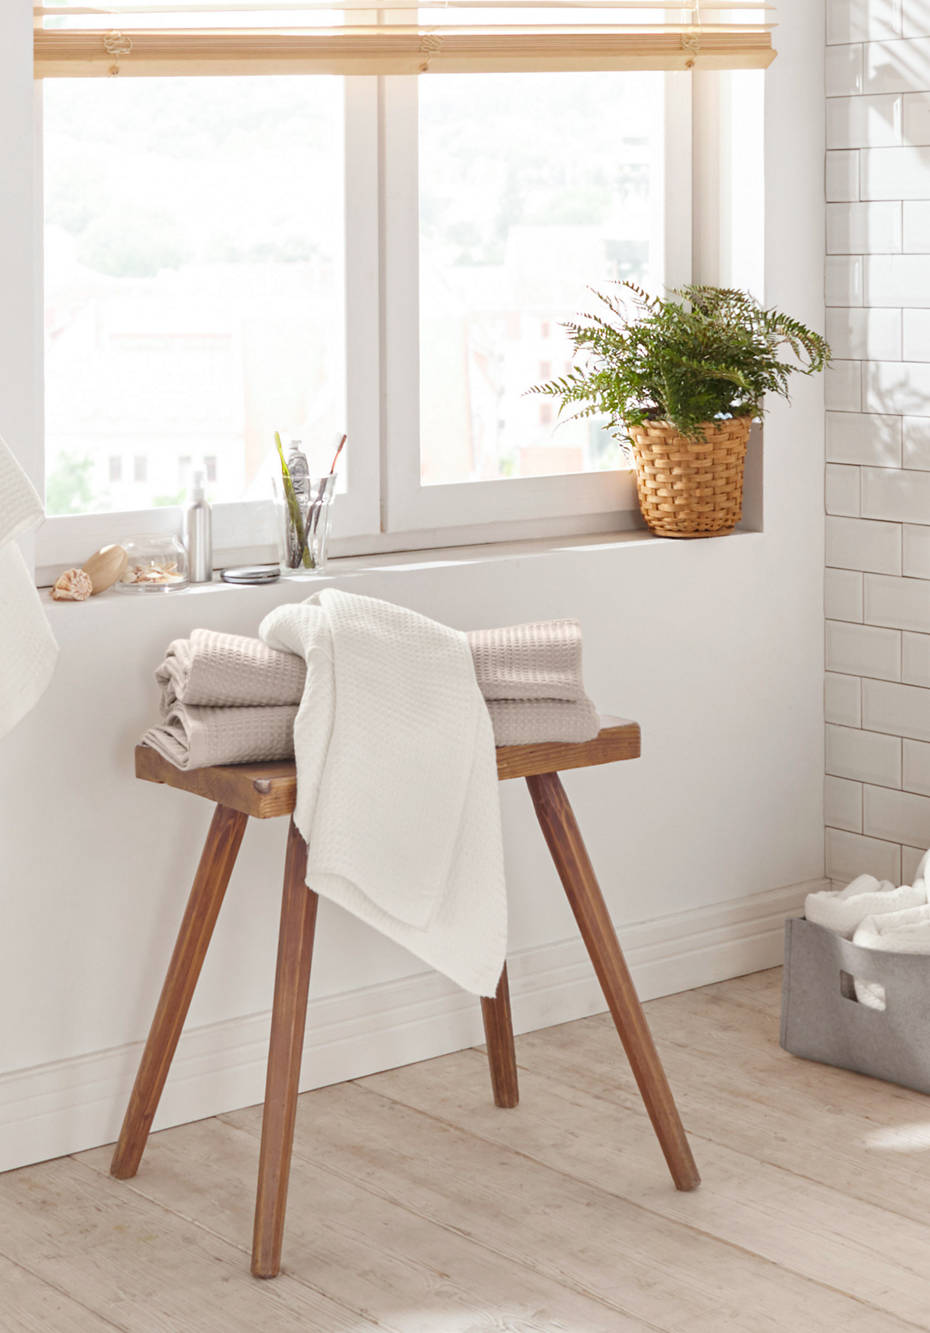 Waffle piqué towel made from pure organic cotton